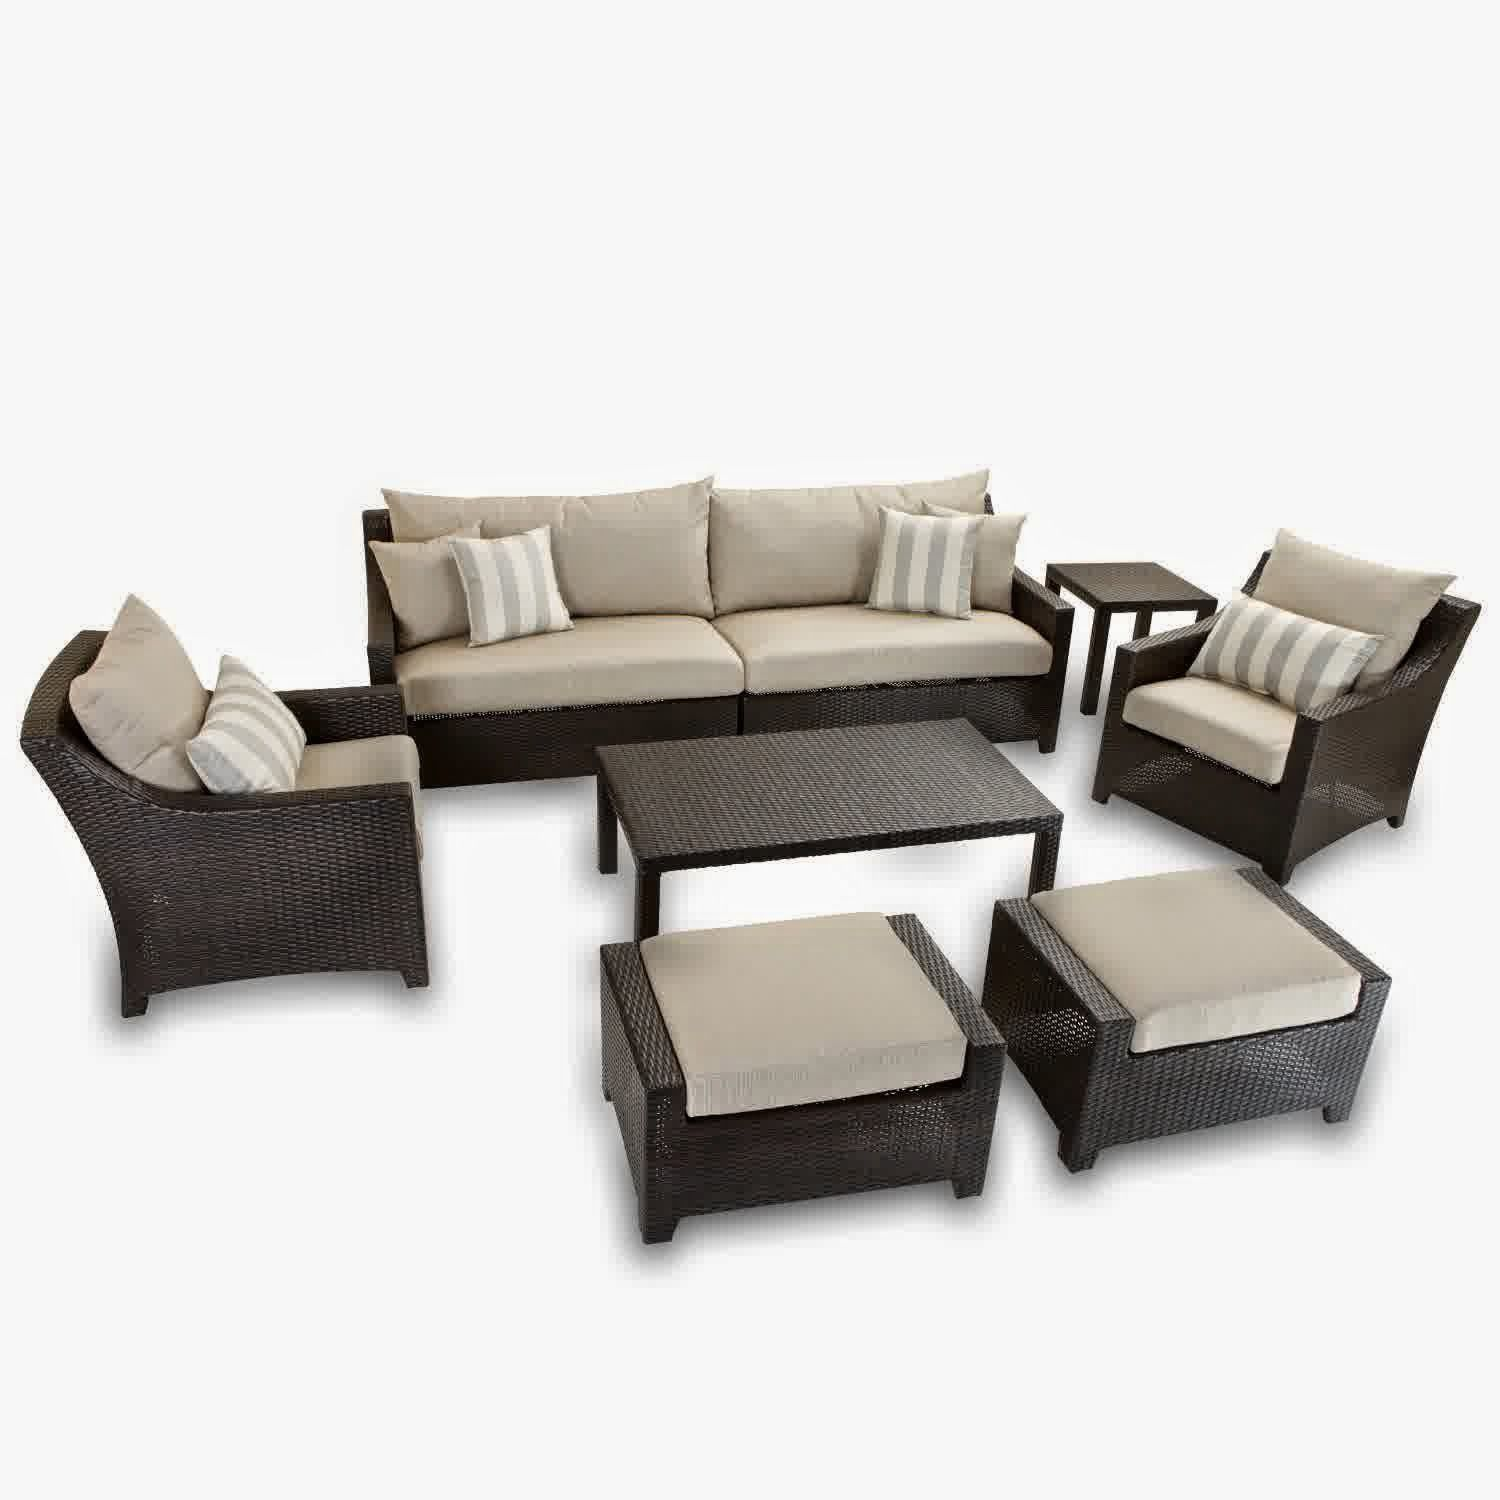 RST Outdoor OP PESS7 SLT K Slate 8 Piece Sofa Club Chair and